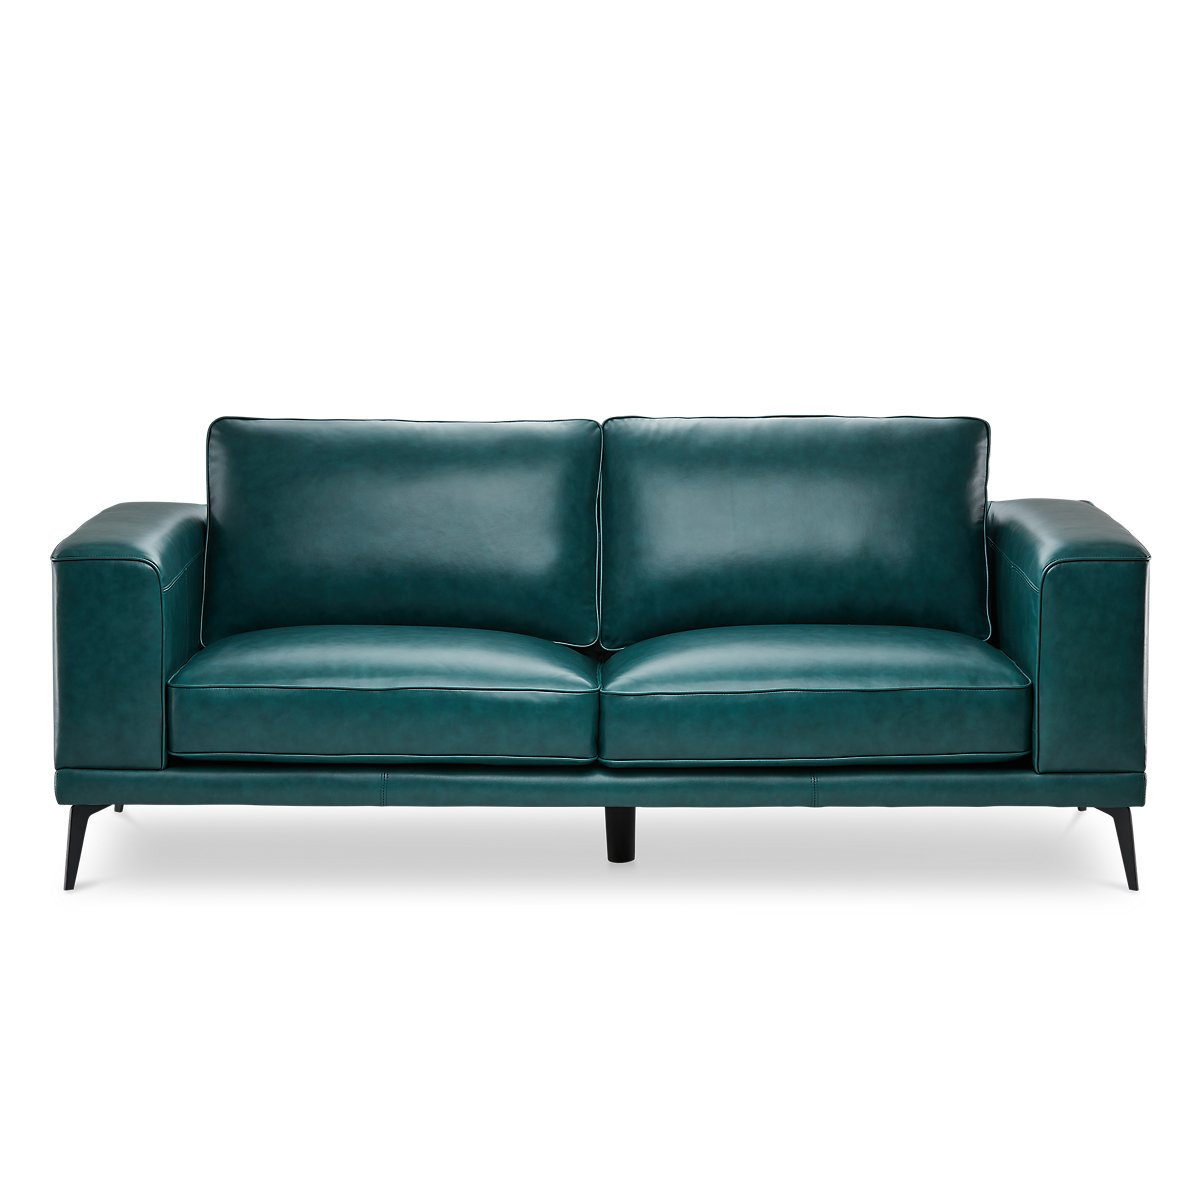 naples turquoise leather sofa with black legs  living